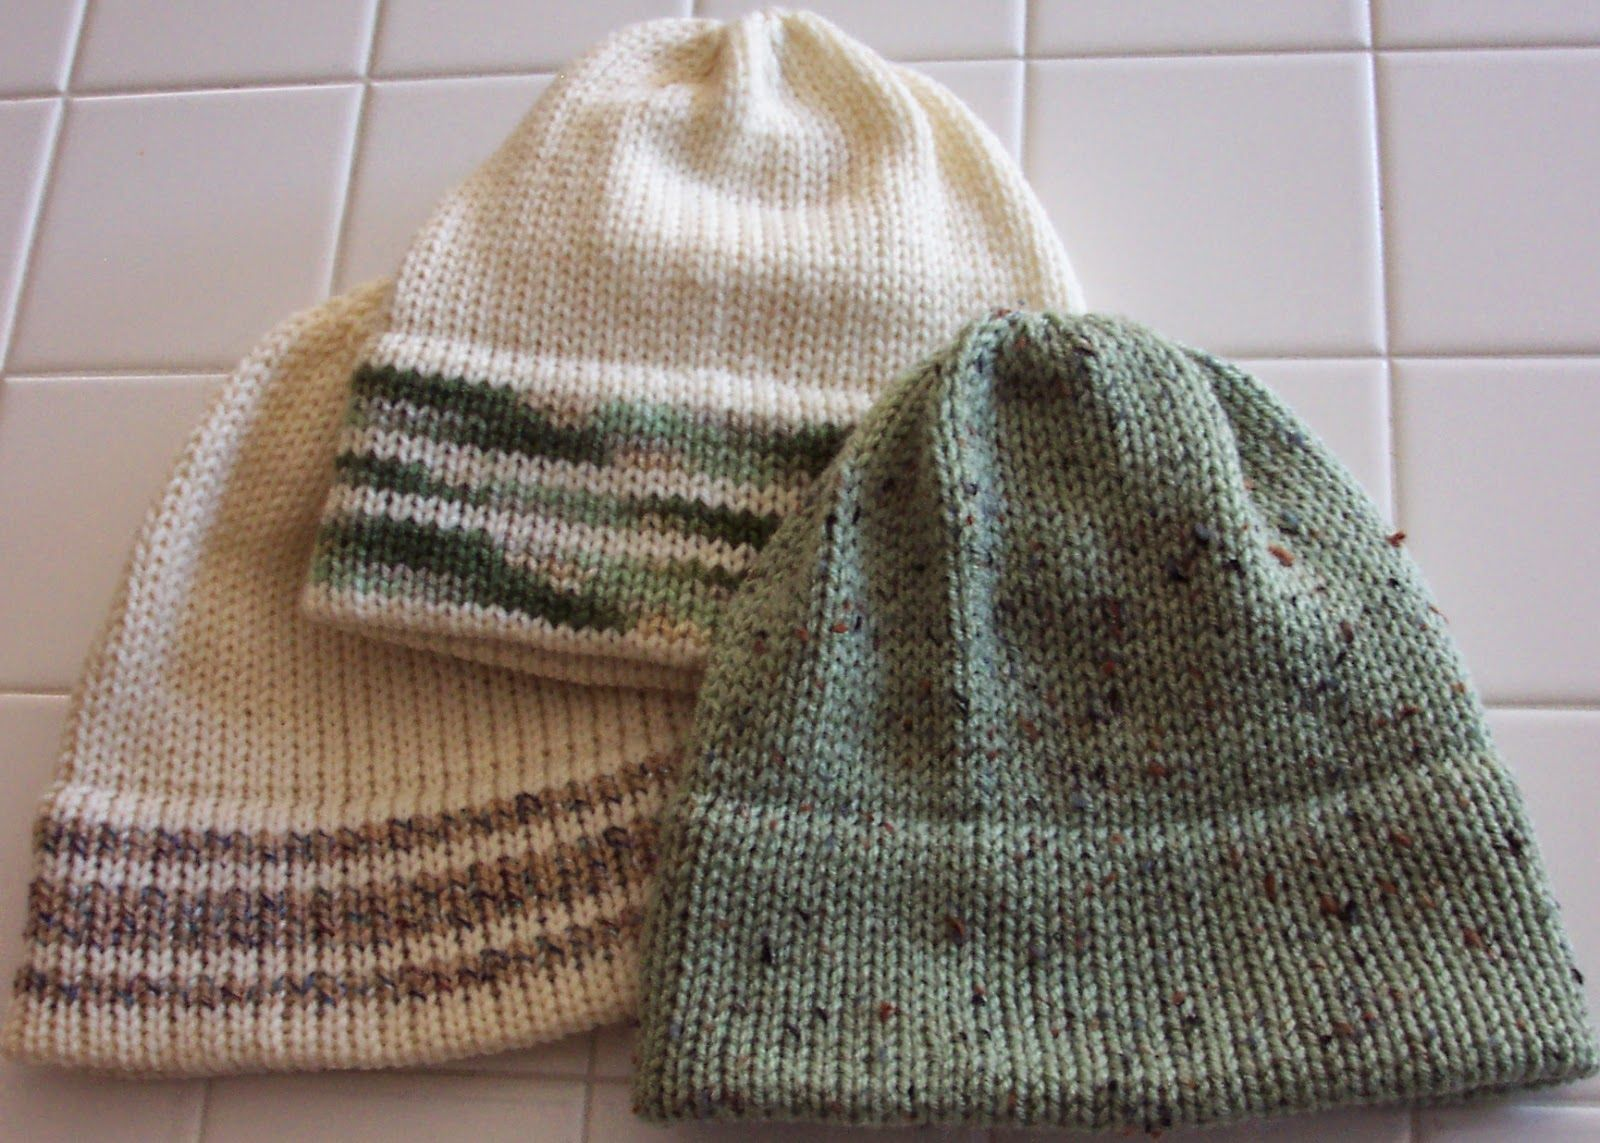 Tom machine knitting guy quick hat for holiday gift no seams knitting machine patterns bankloansurffo Image collections